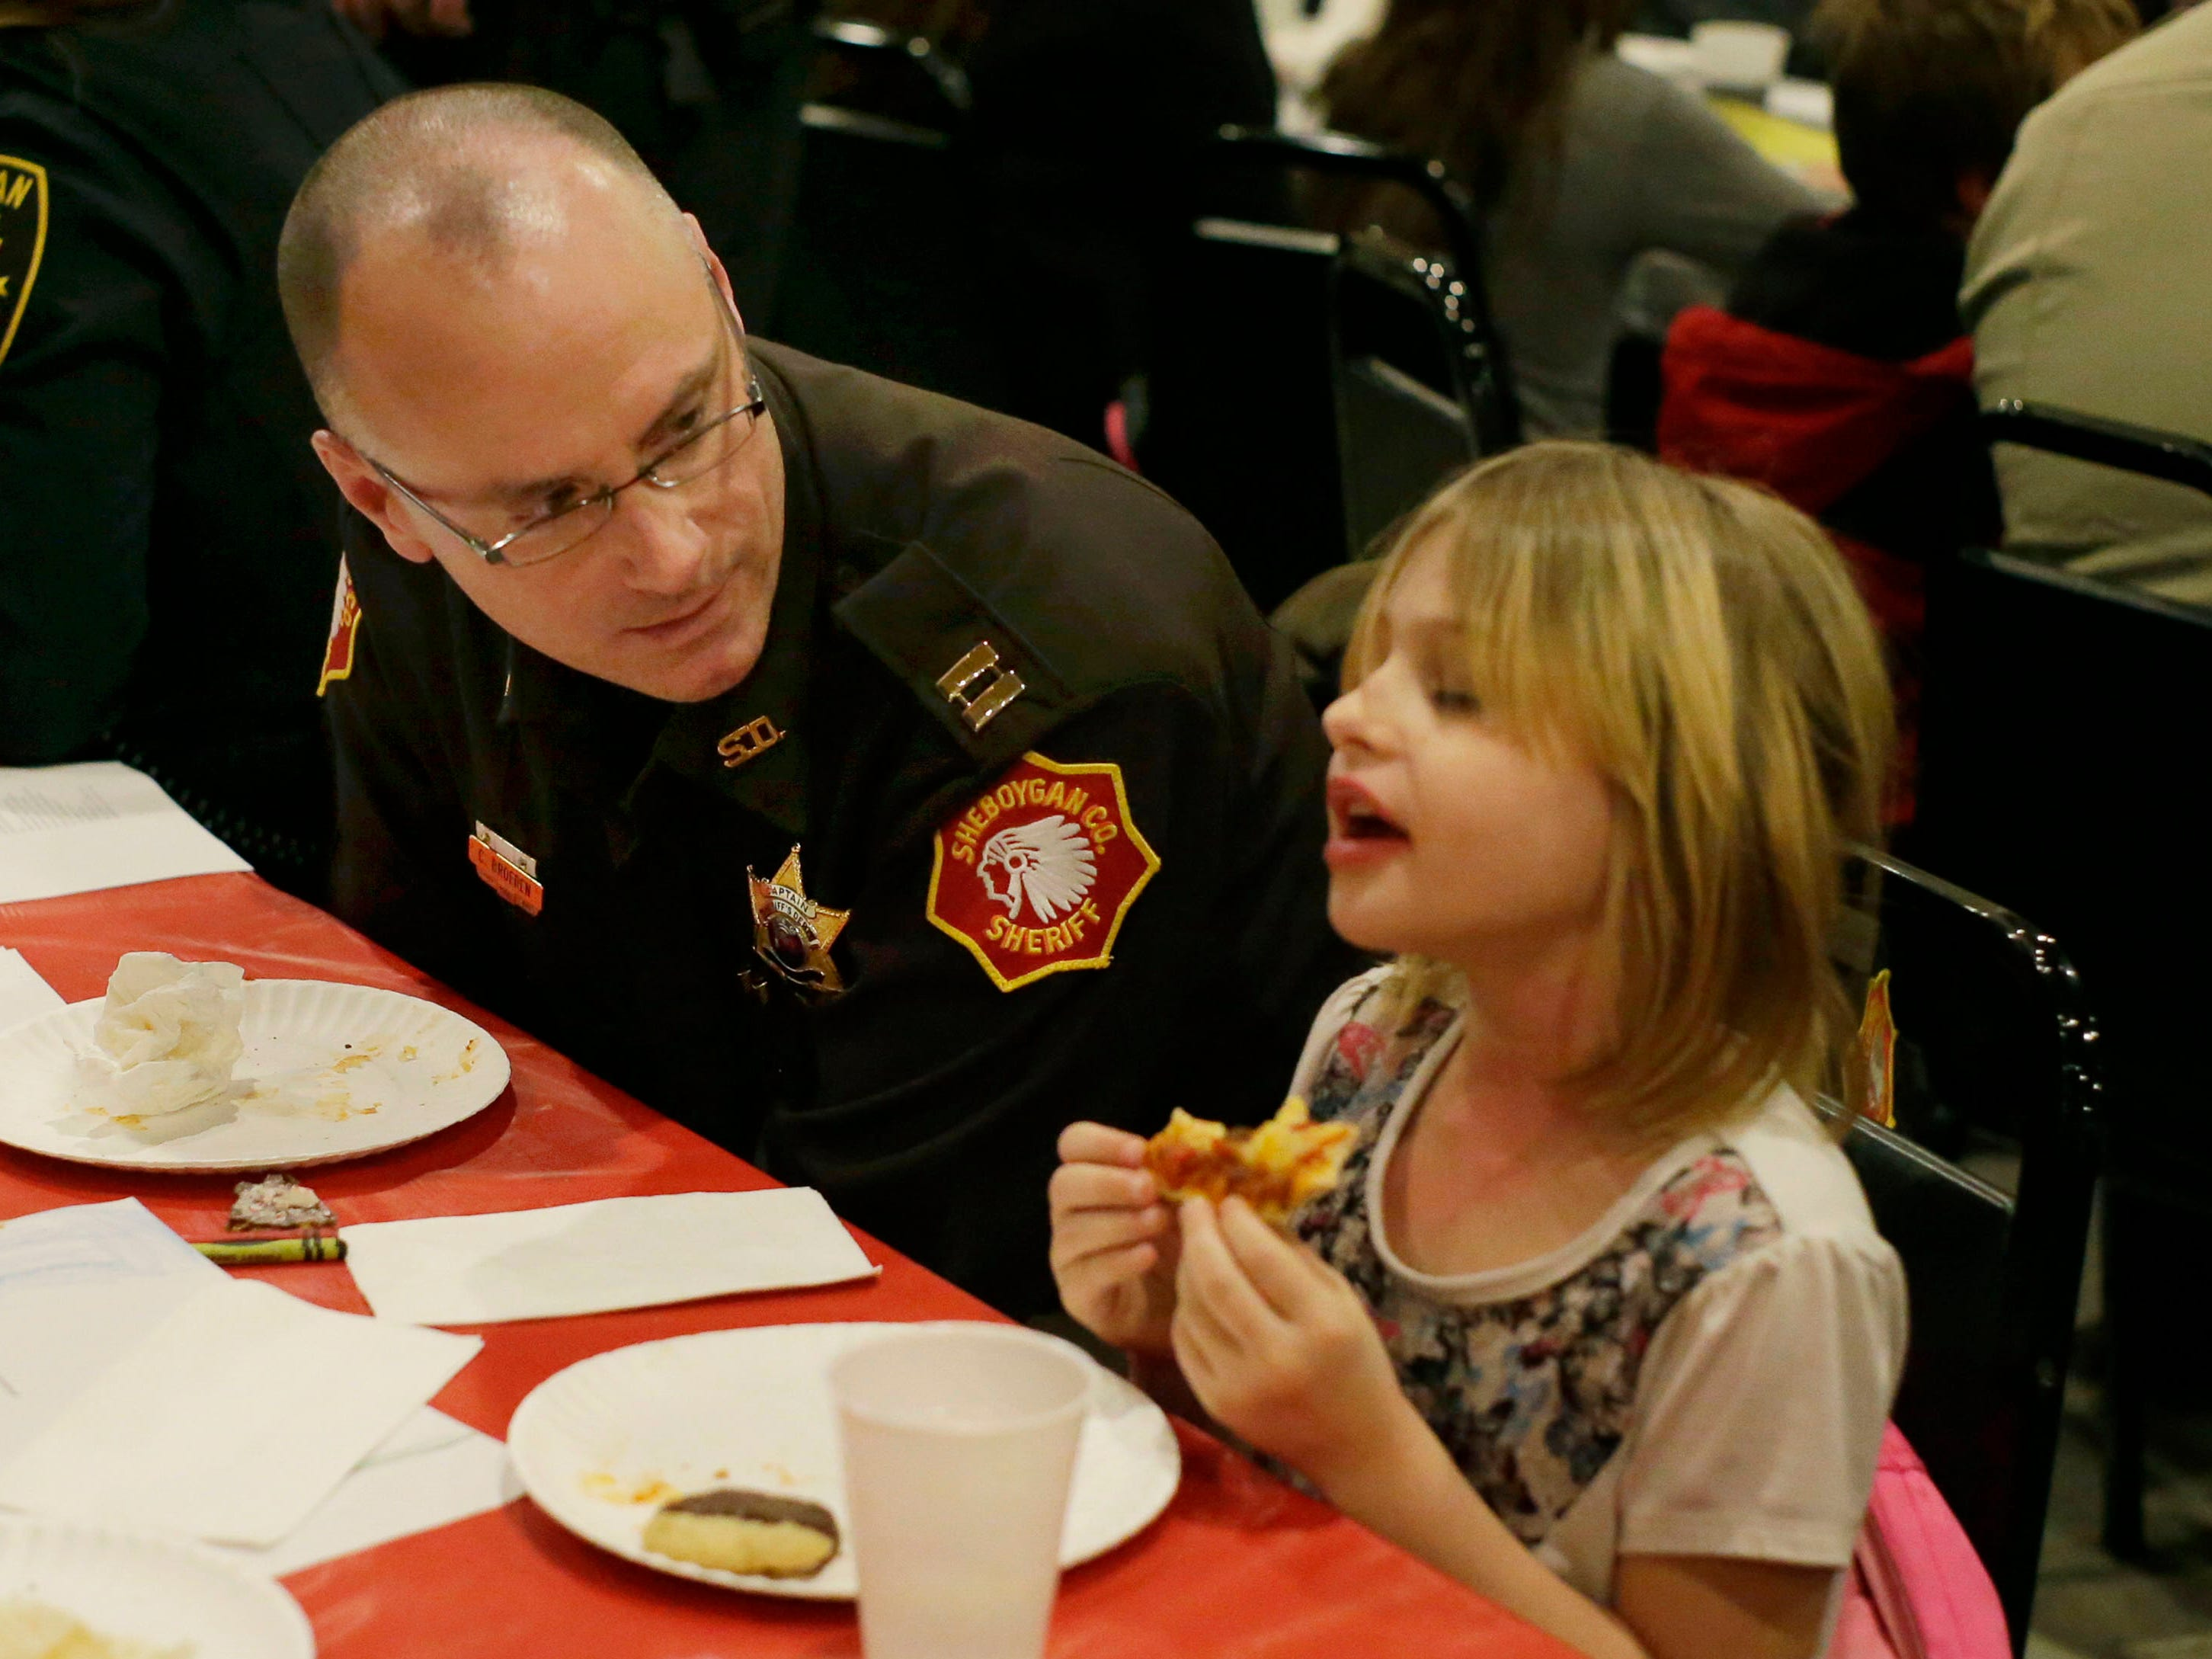 Sheboygan County Sheriff Capt. Chad Broeren, left, listens to Hinata Beckwith, 10, of Sheboygan, talk while at Lakeshore Lanes during the kickoff for Shop with a Cop, Tuesday, December 4, 2018, in Sheboygan, Wis. The program, in its 21st year, raises funds to give children a chance to buy holiday gifts that they otherwise might not receive.